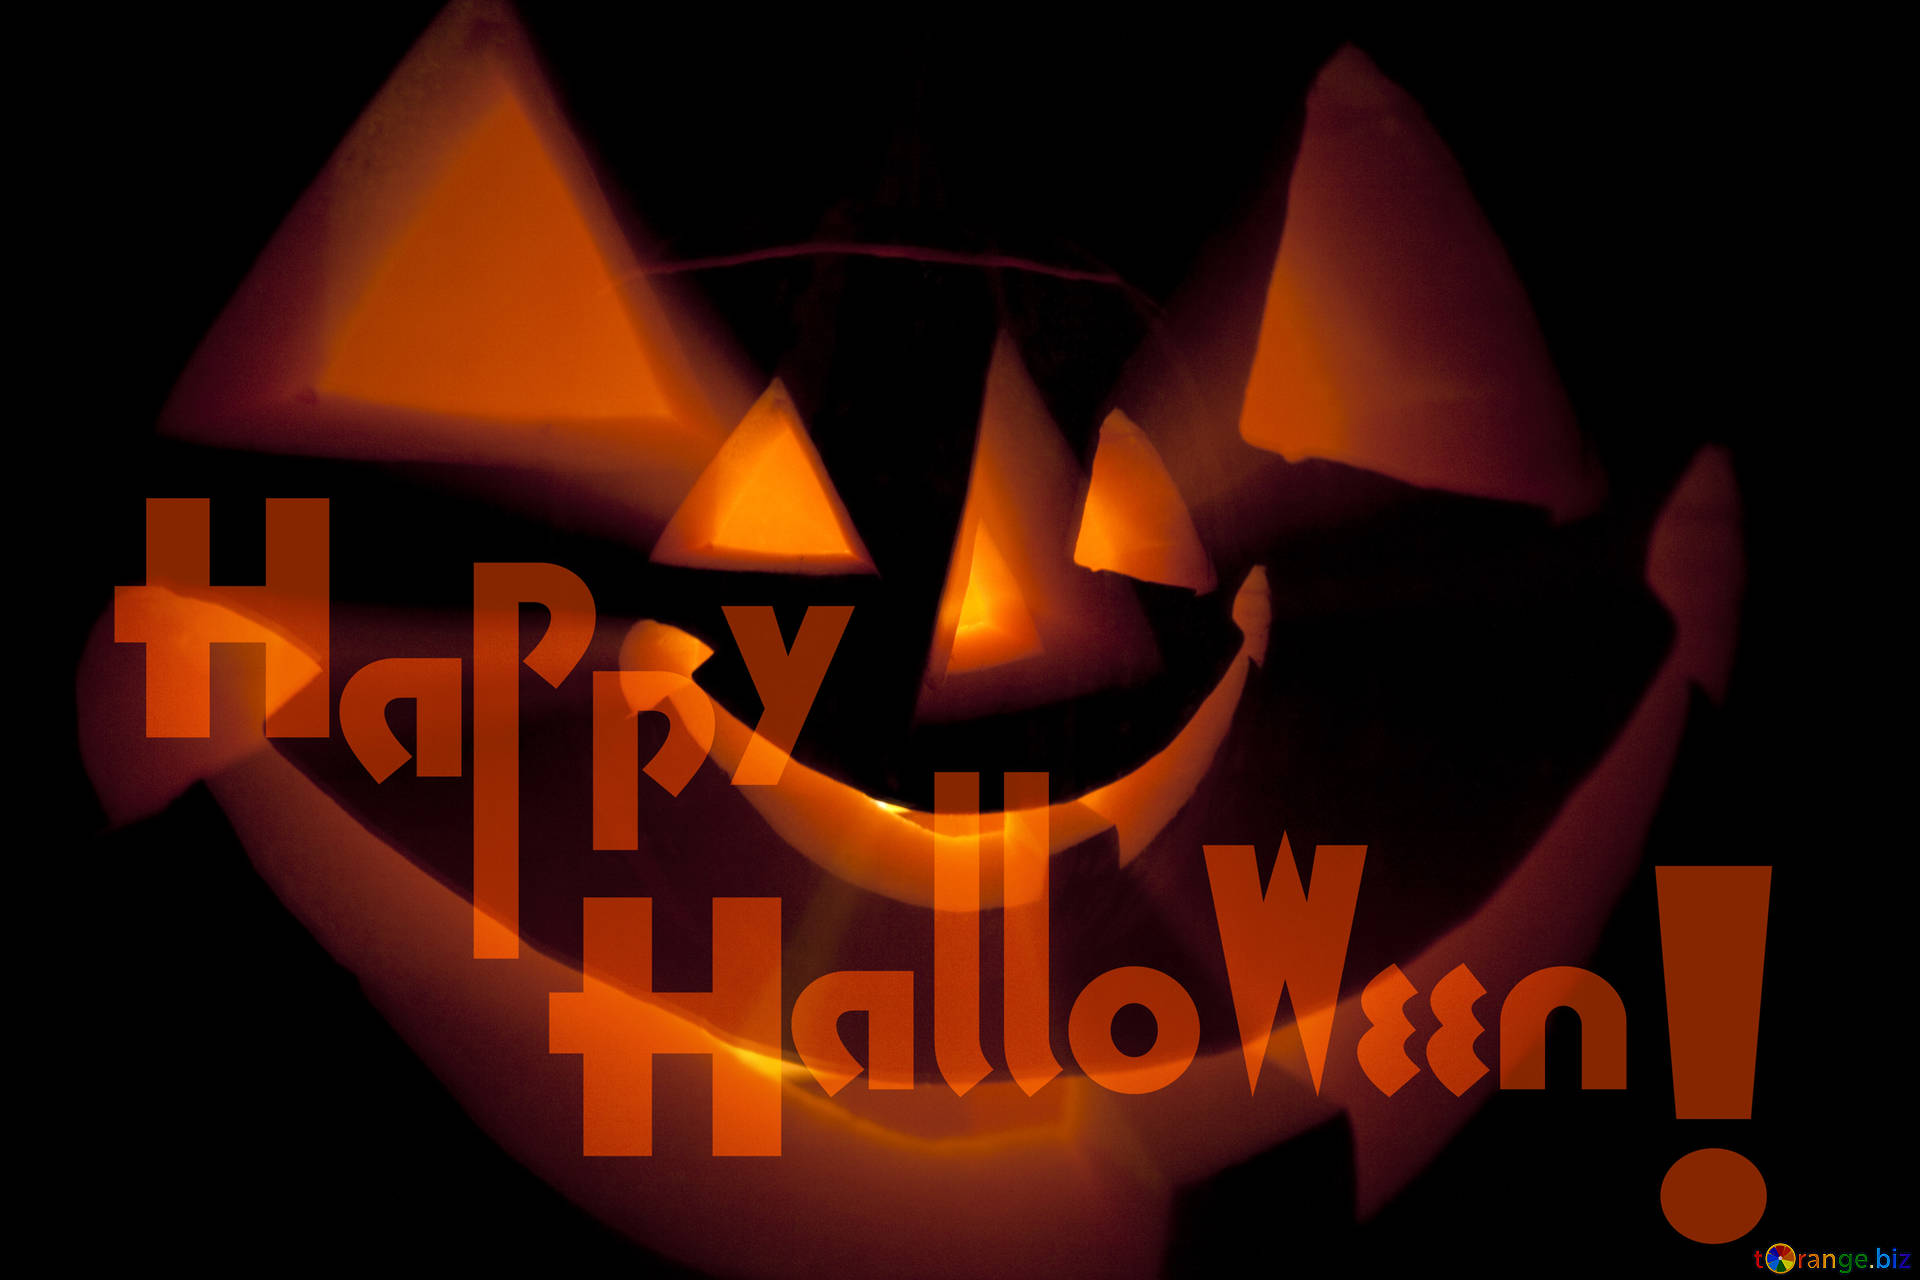 Halloween backgrounds halloween background at wallpaper for 1920x1280